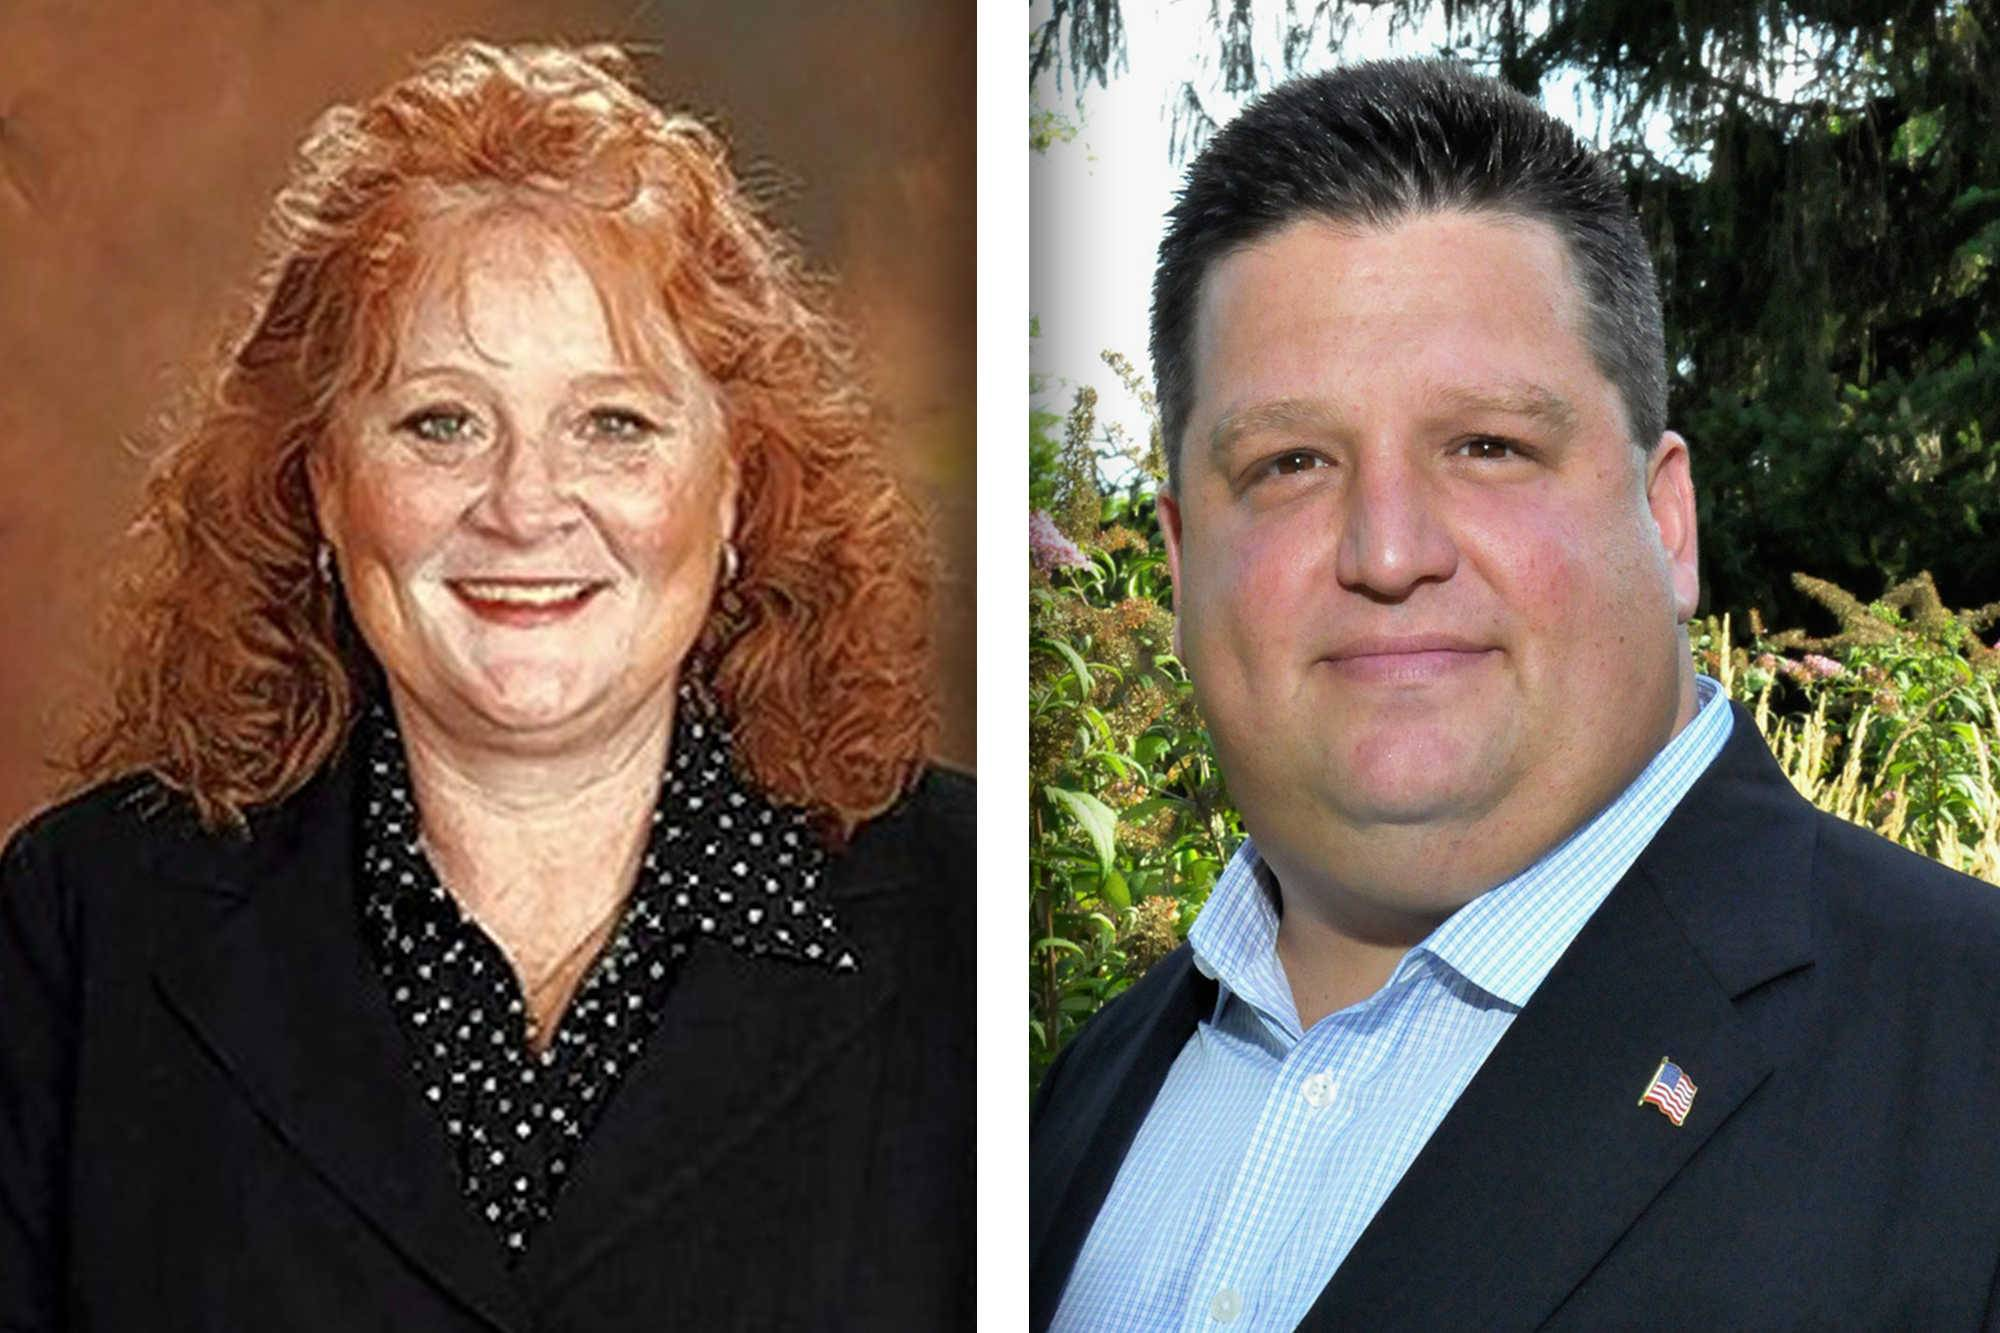 Democrat Laura Murphy and Republican Mel Thillens are candidates for the 28th District seat in the state Senate.